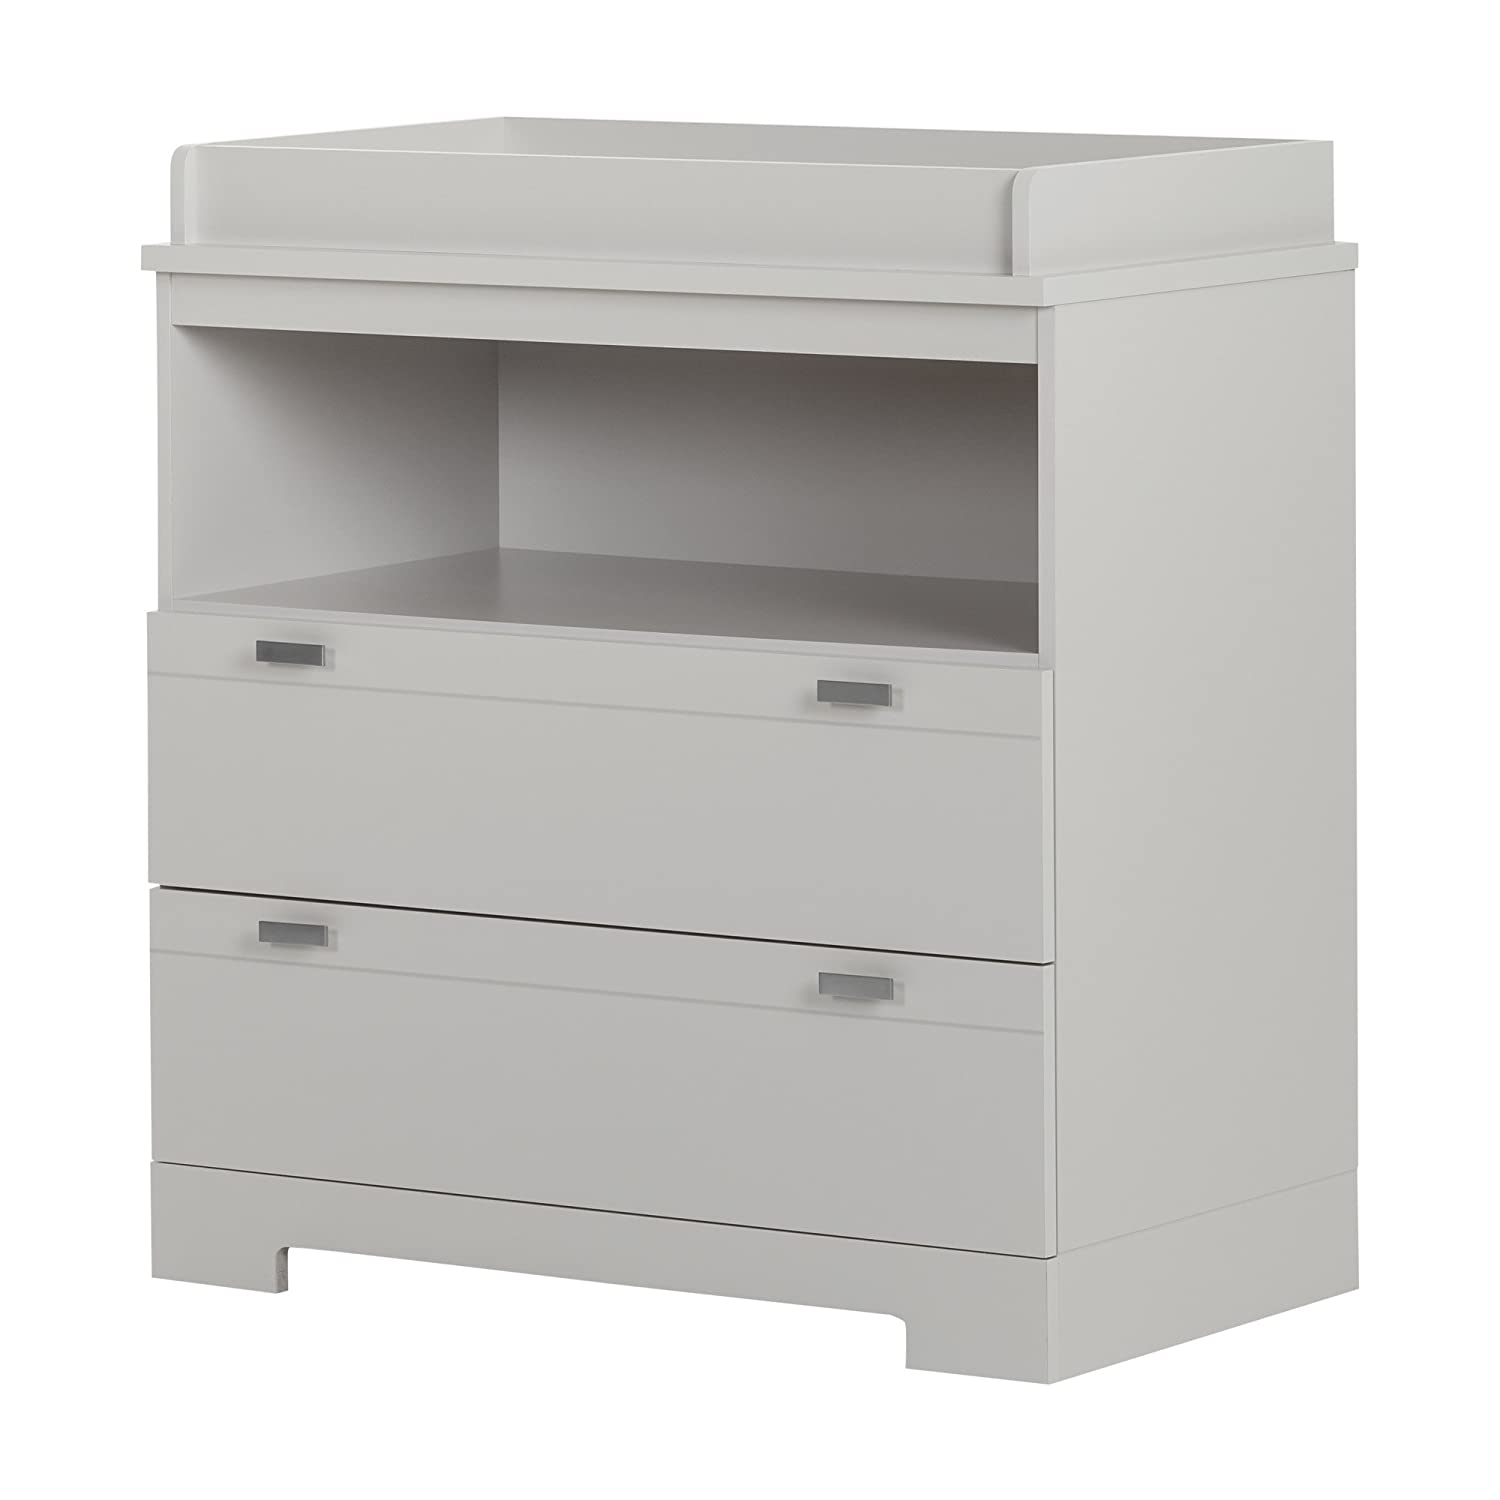 South Shore Furniture Reevo Changing Table with Storage, Soft Gray 10272